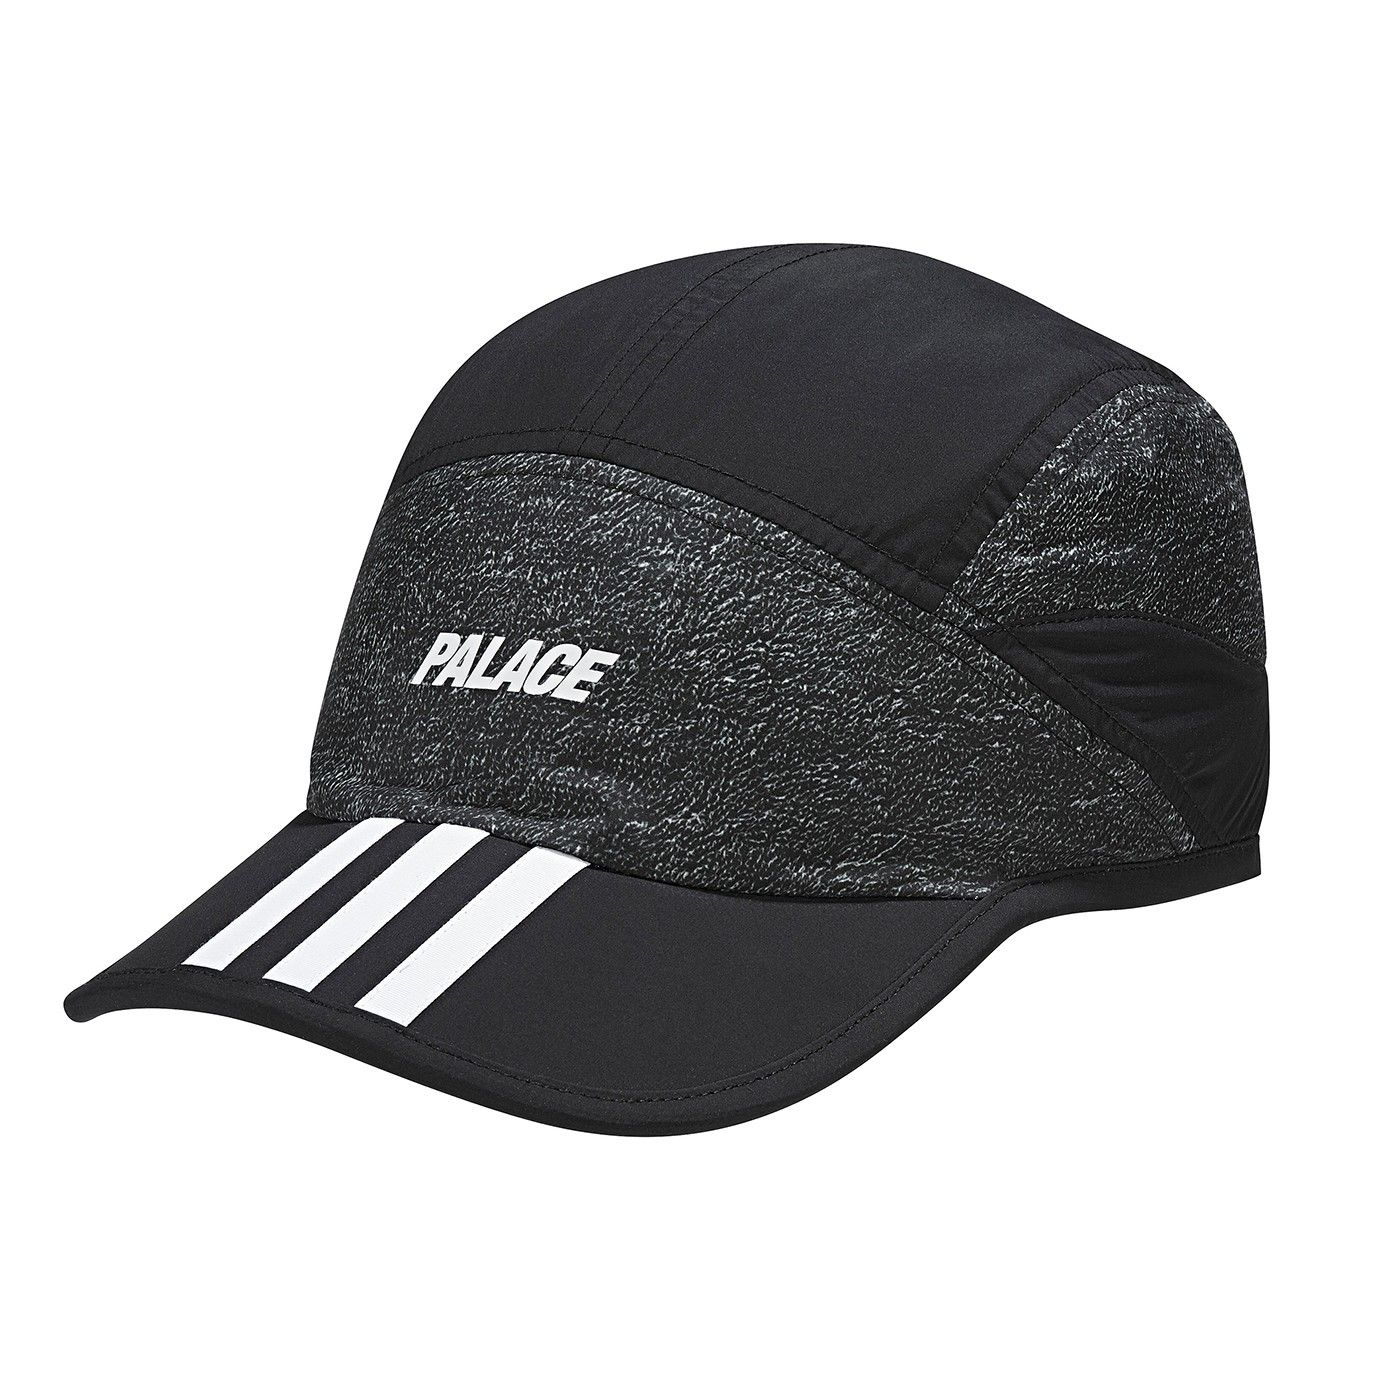 1a80b783cce Palace Cap in Black by Palace x Adidas